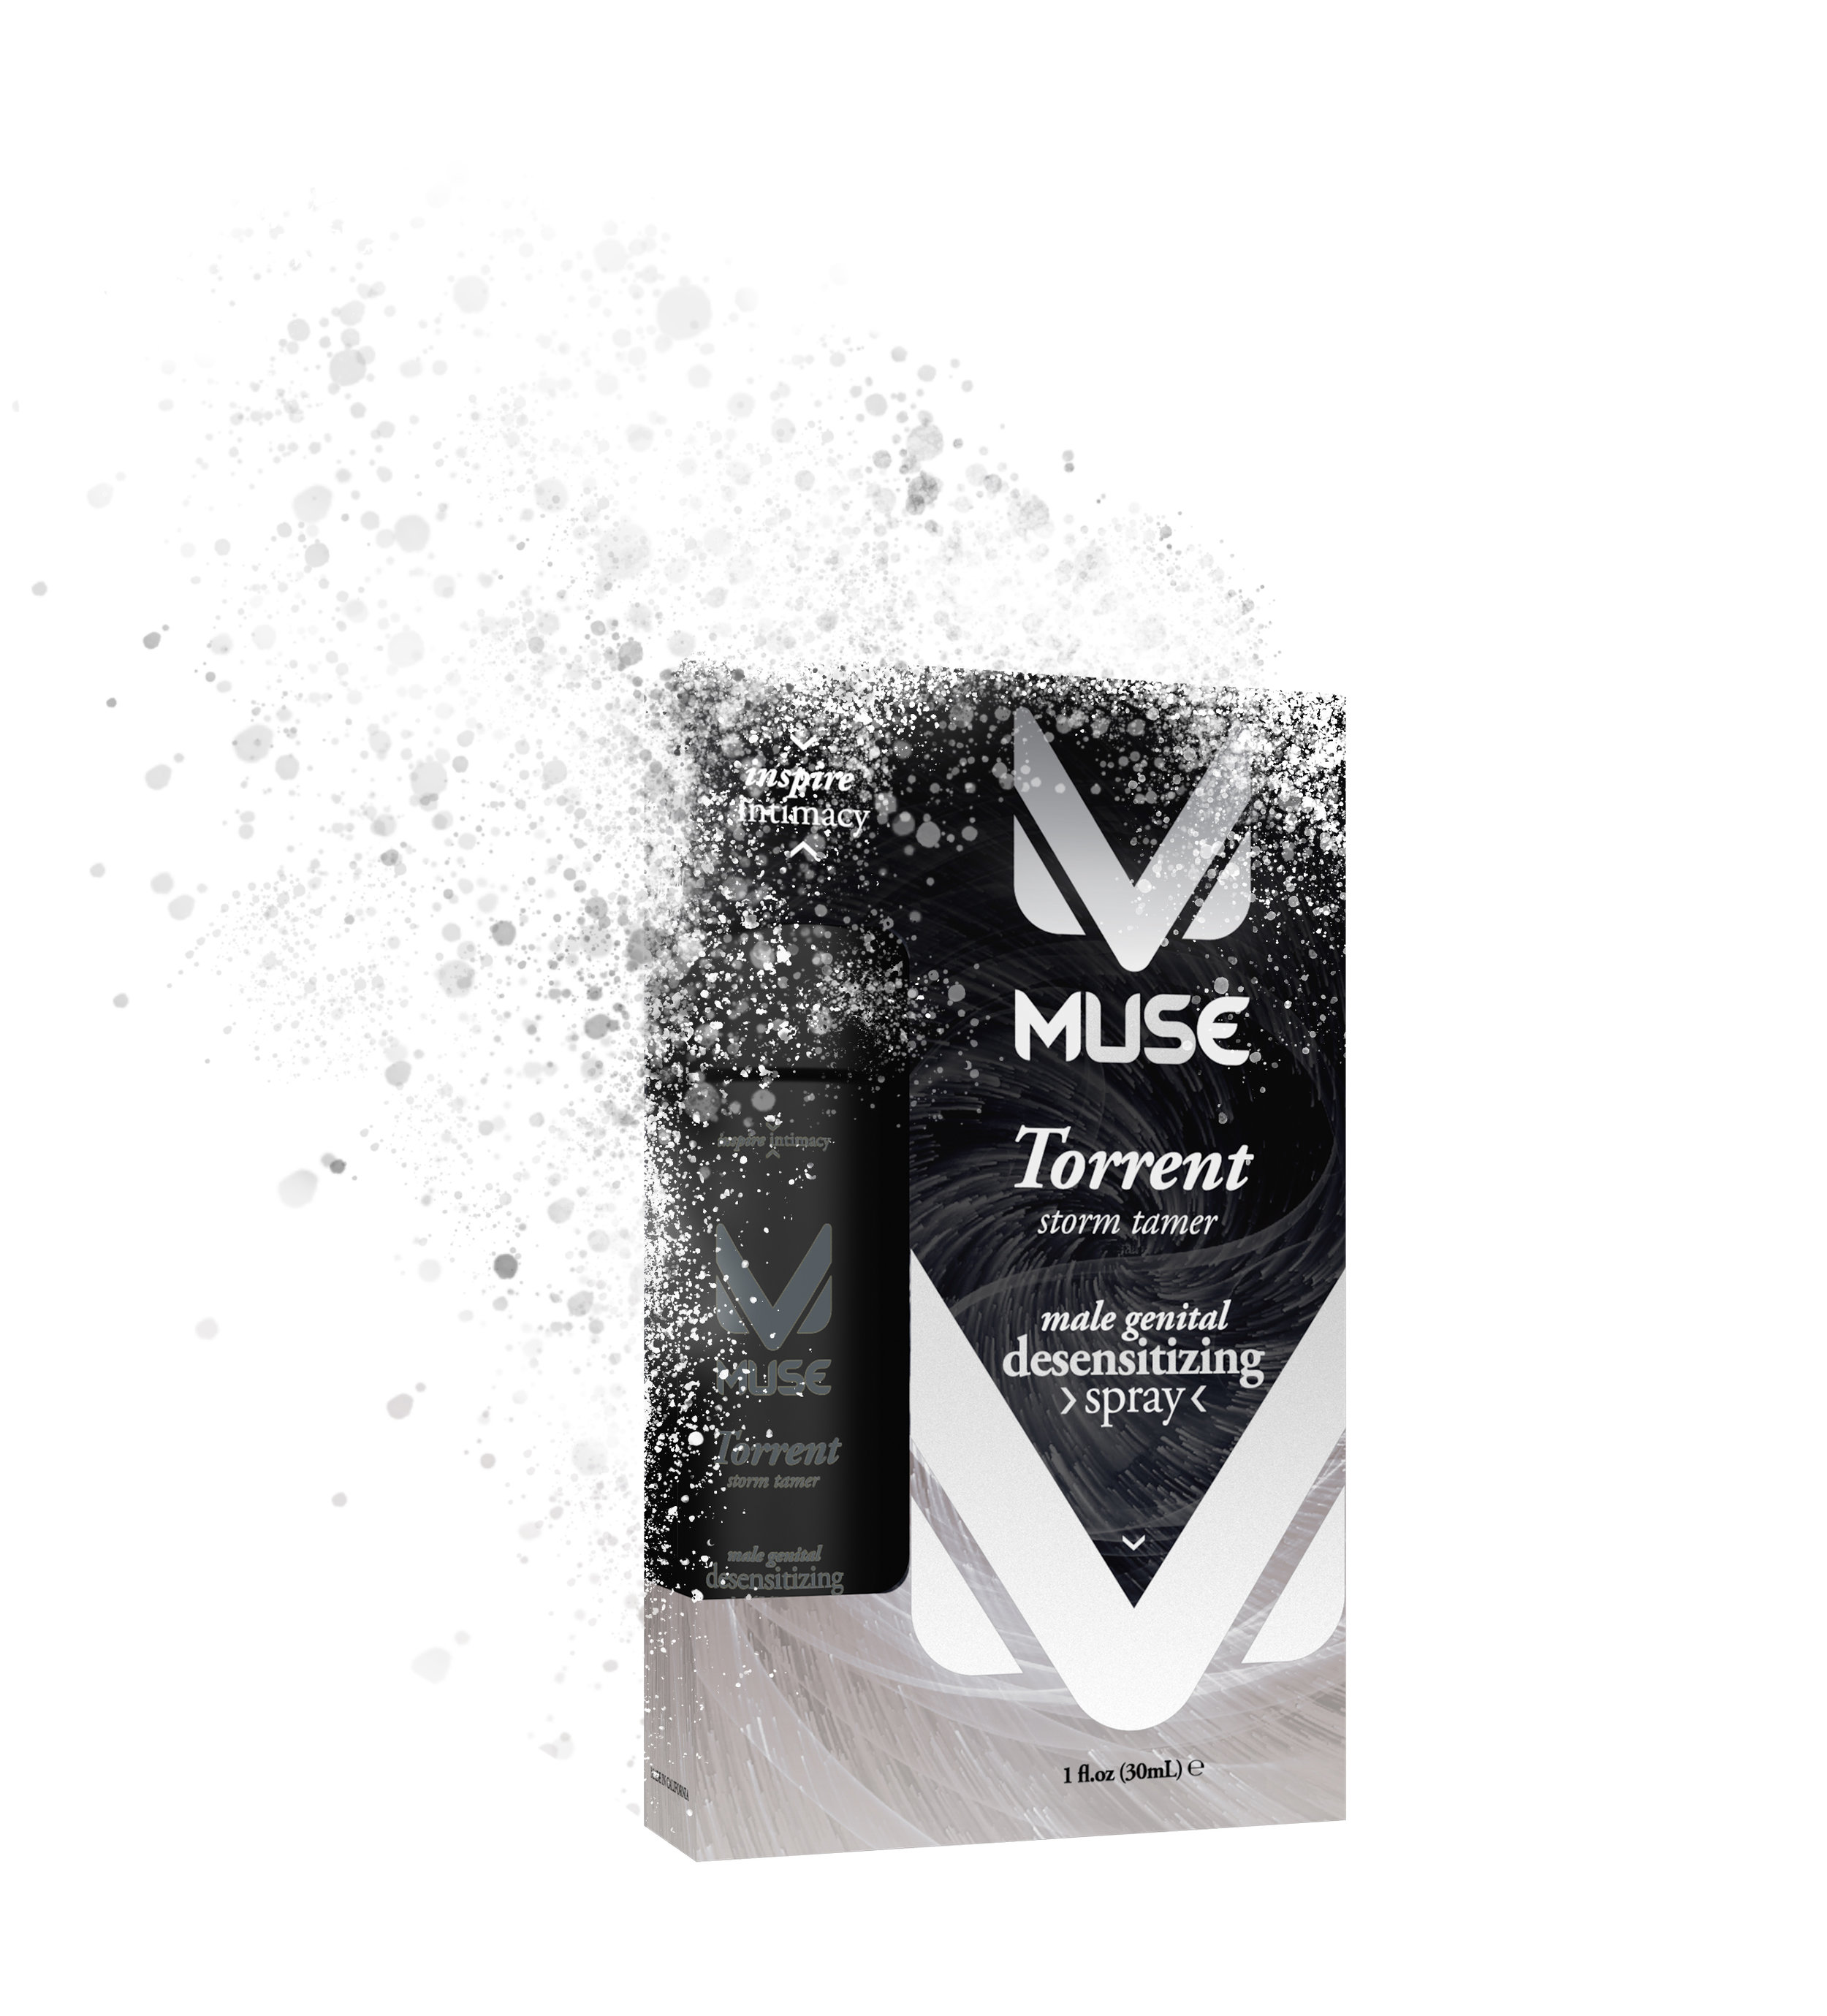 MUSE_Torrent PAIR Particle.jpg